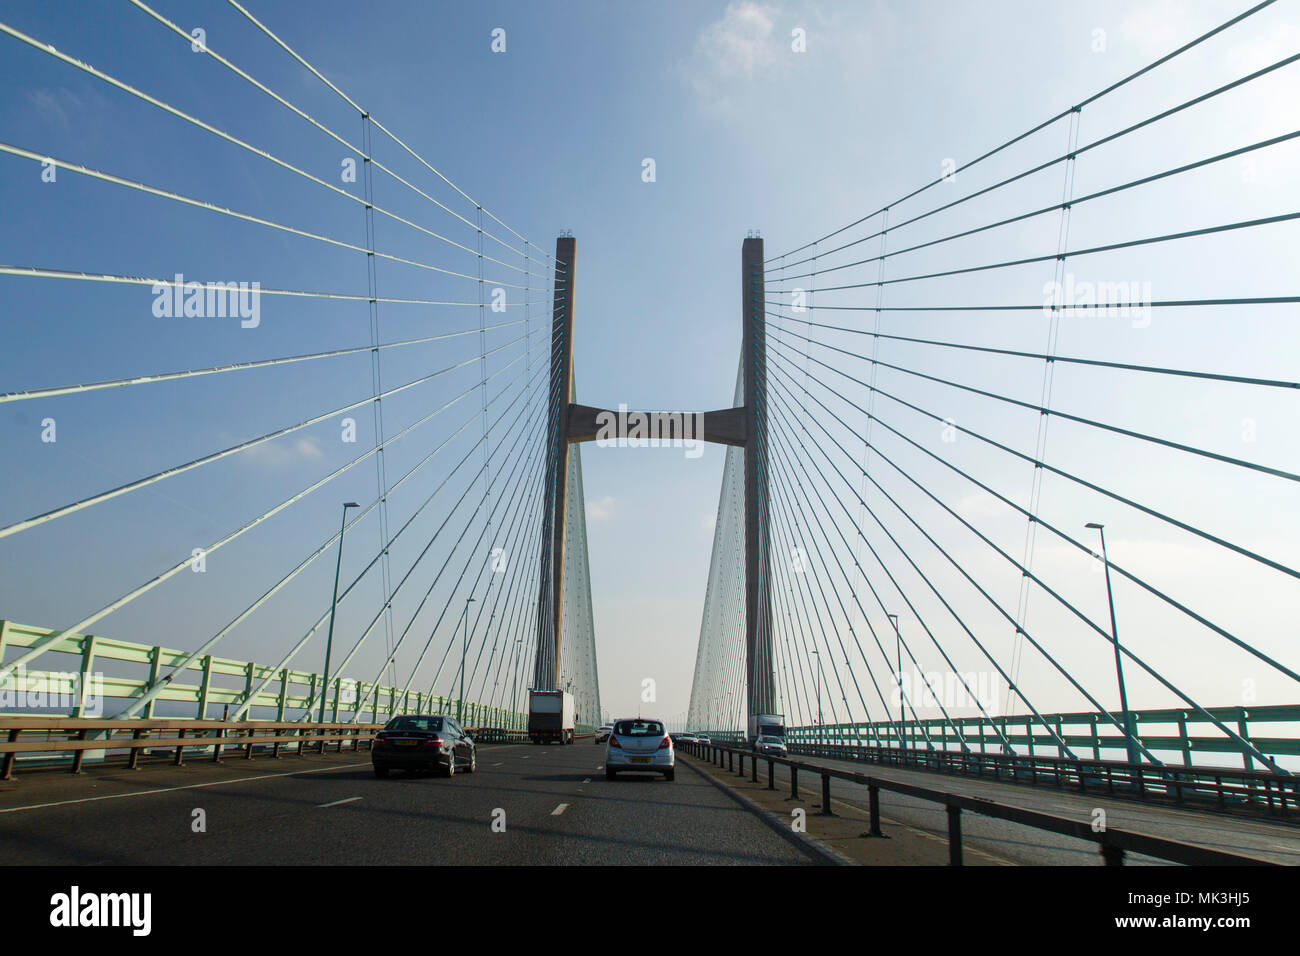 Chepstow, UK: February 24, 2018: Crossing the Severn Bridge eastward bound. Following traffic across the Severn River into England. Stock Photo